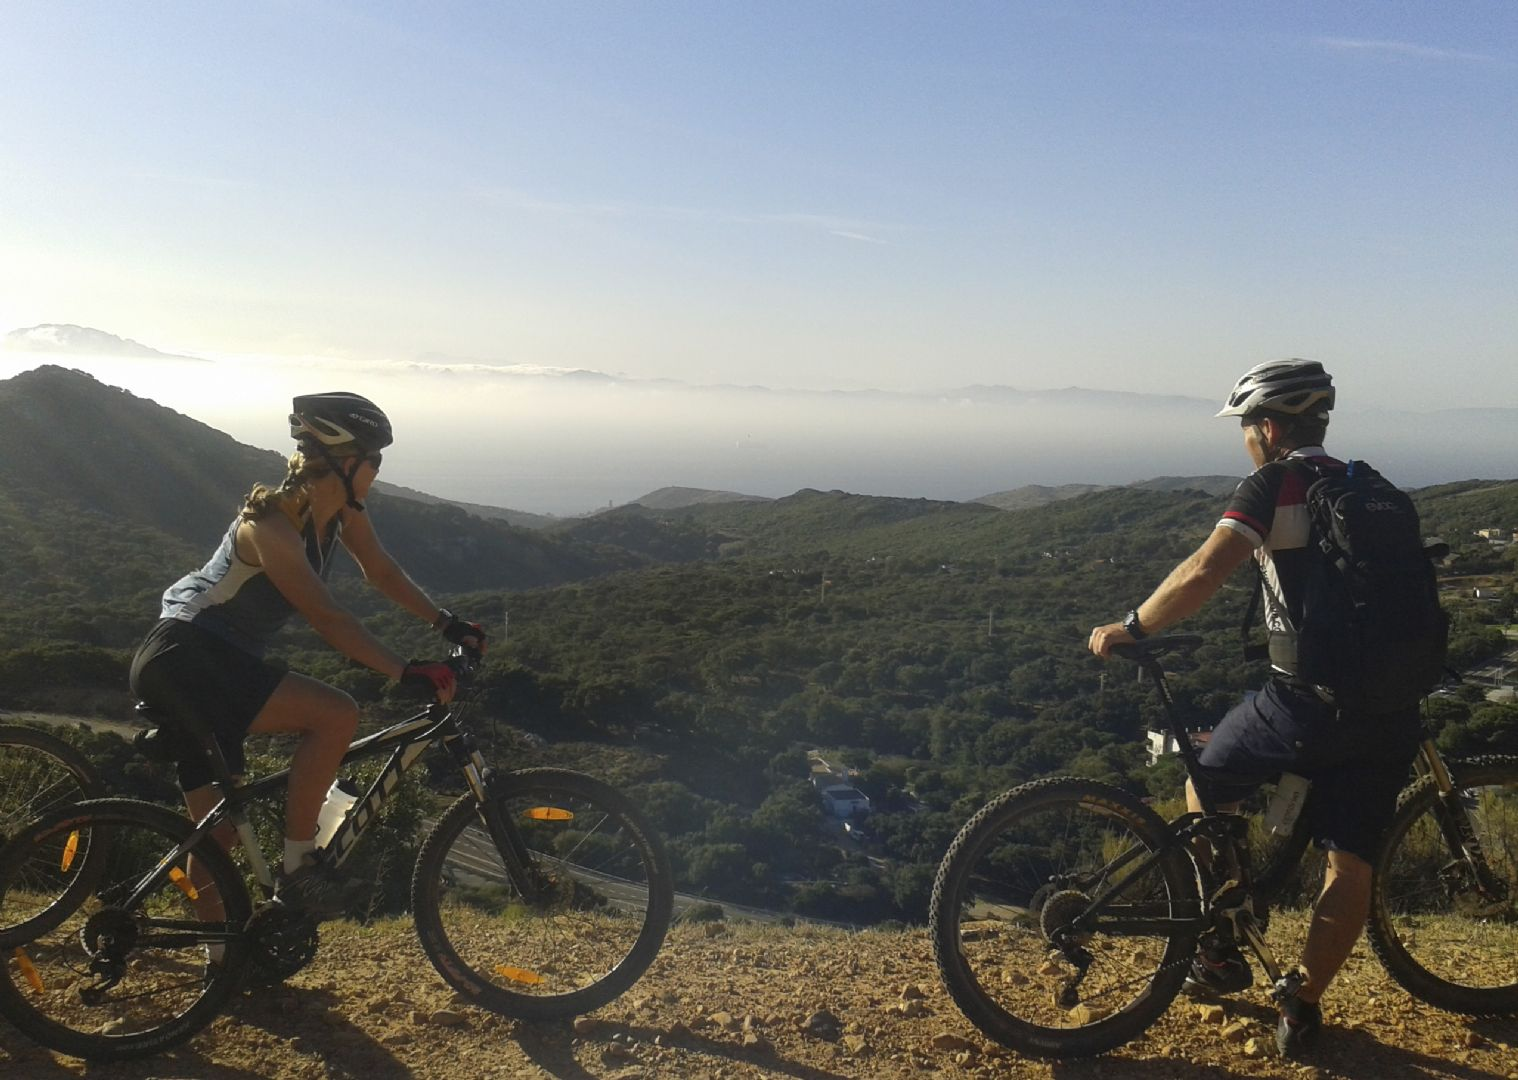 20141024_102933.jpg - Southern Spain - Sierras to the Sea - Self-Guided Leisure Cycling Holiday - Leisure Cycling